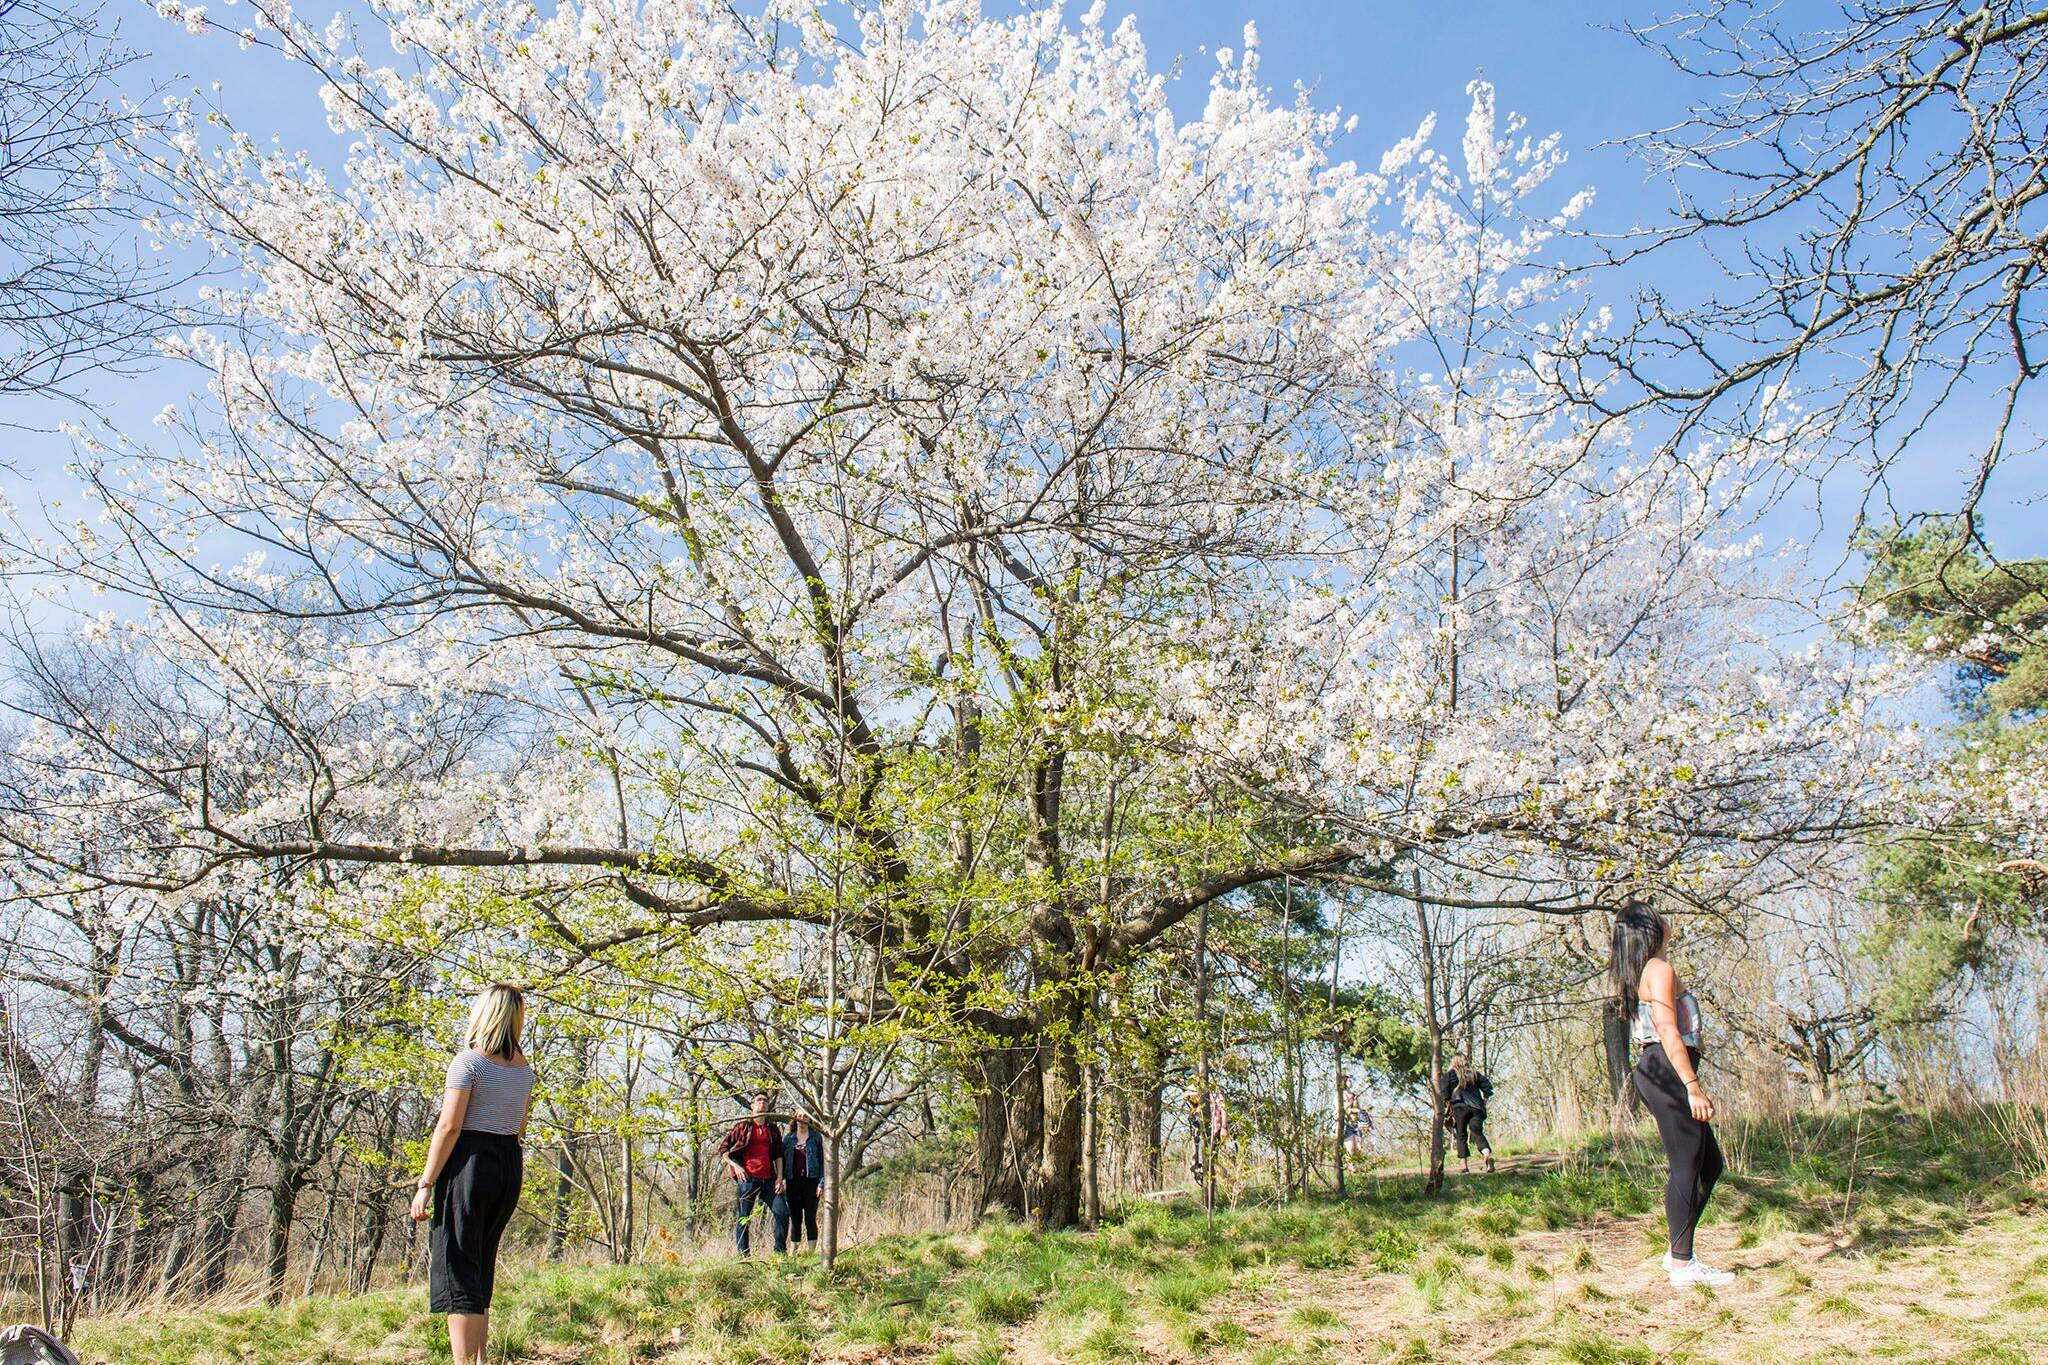 high park cherry blossom toronto 2021 dates